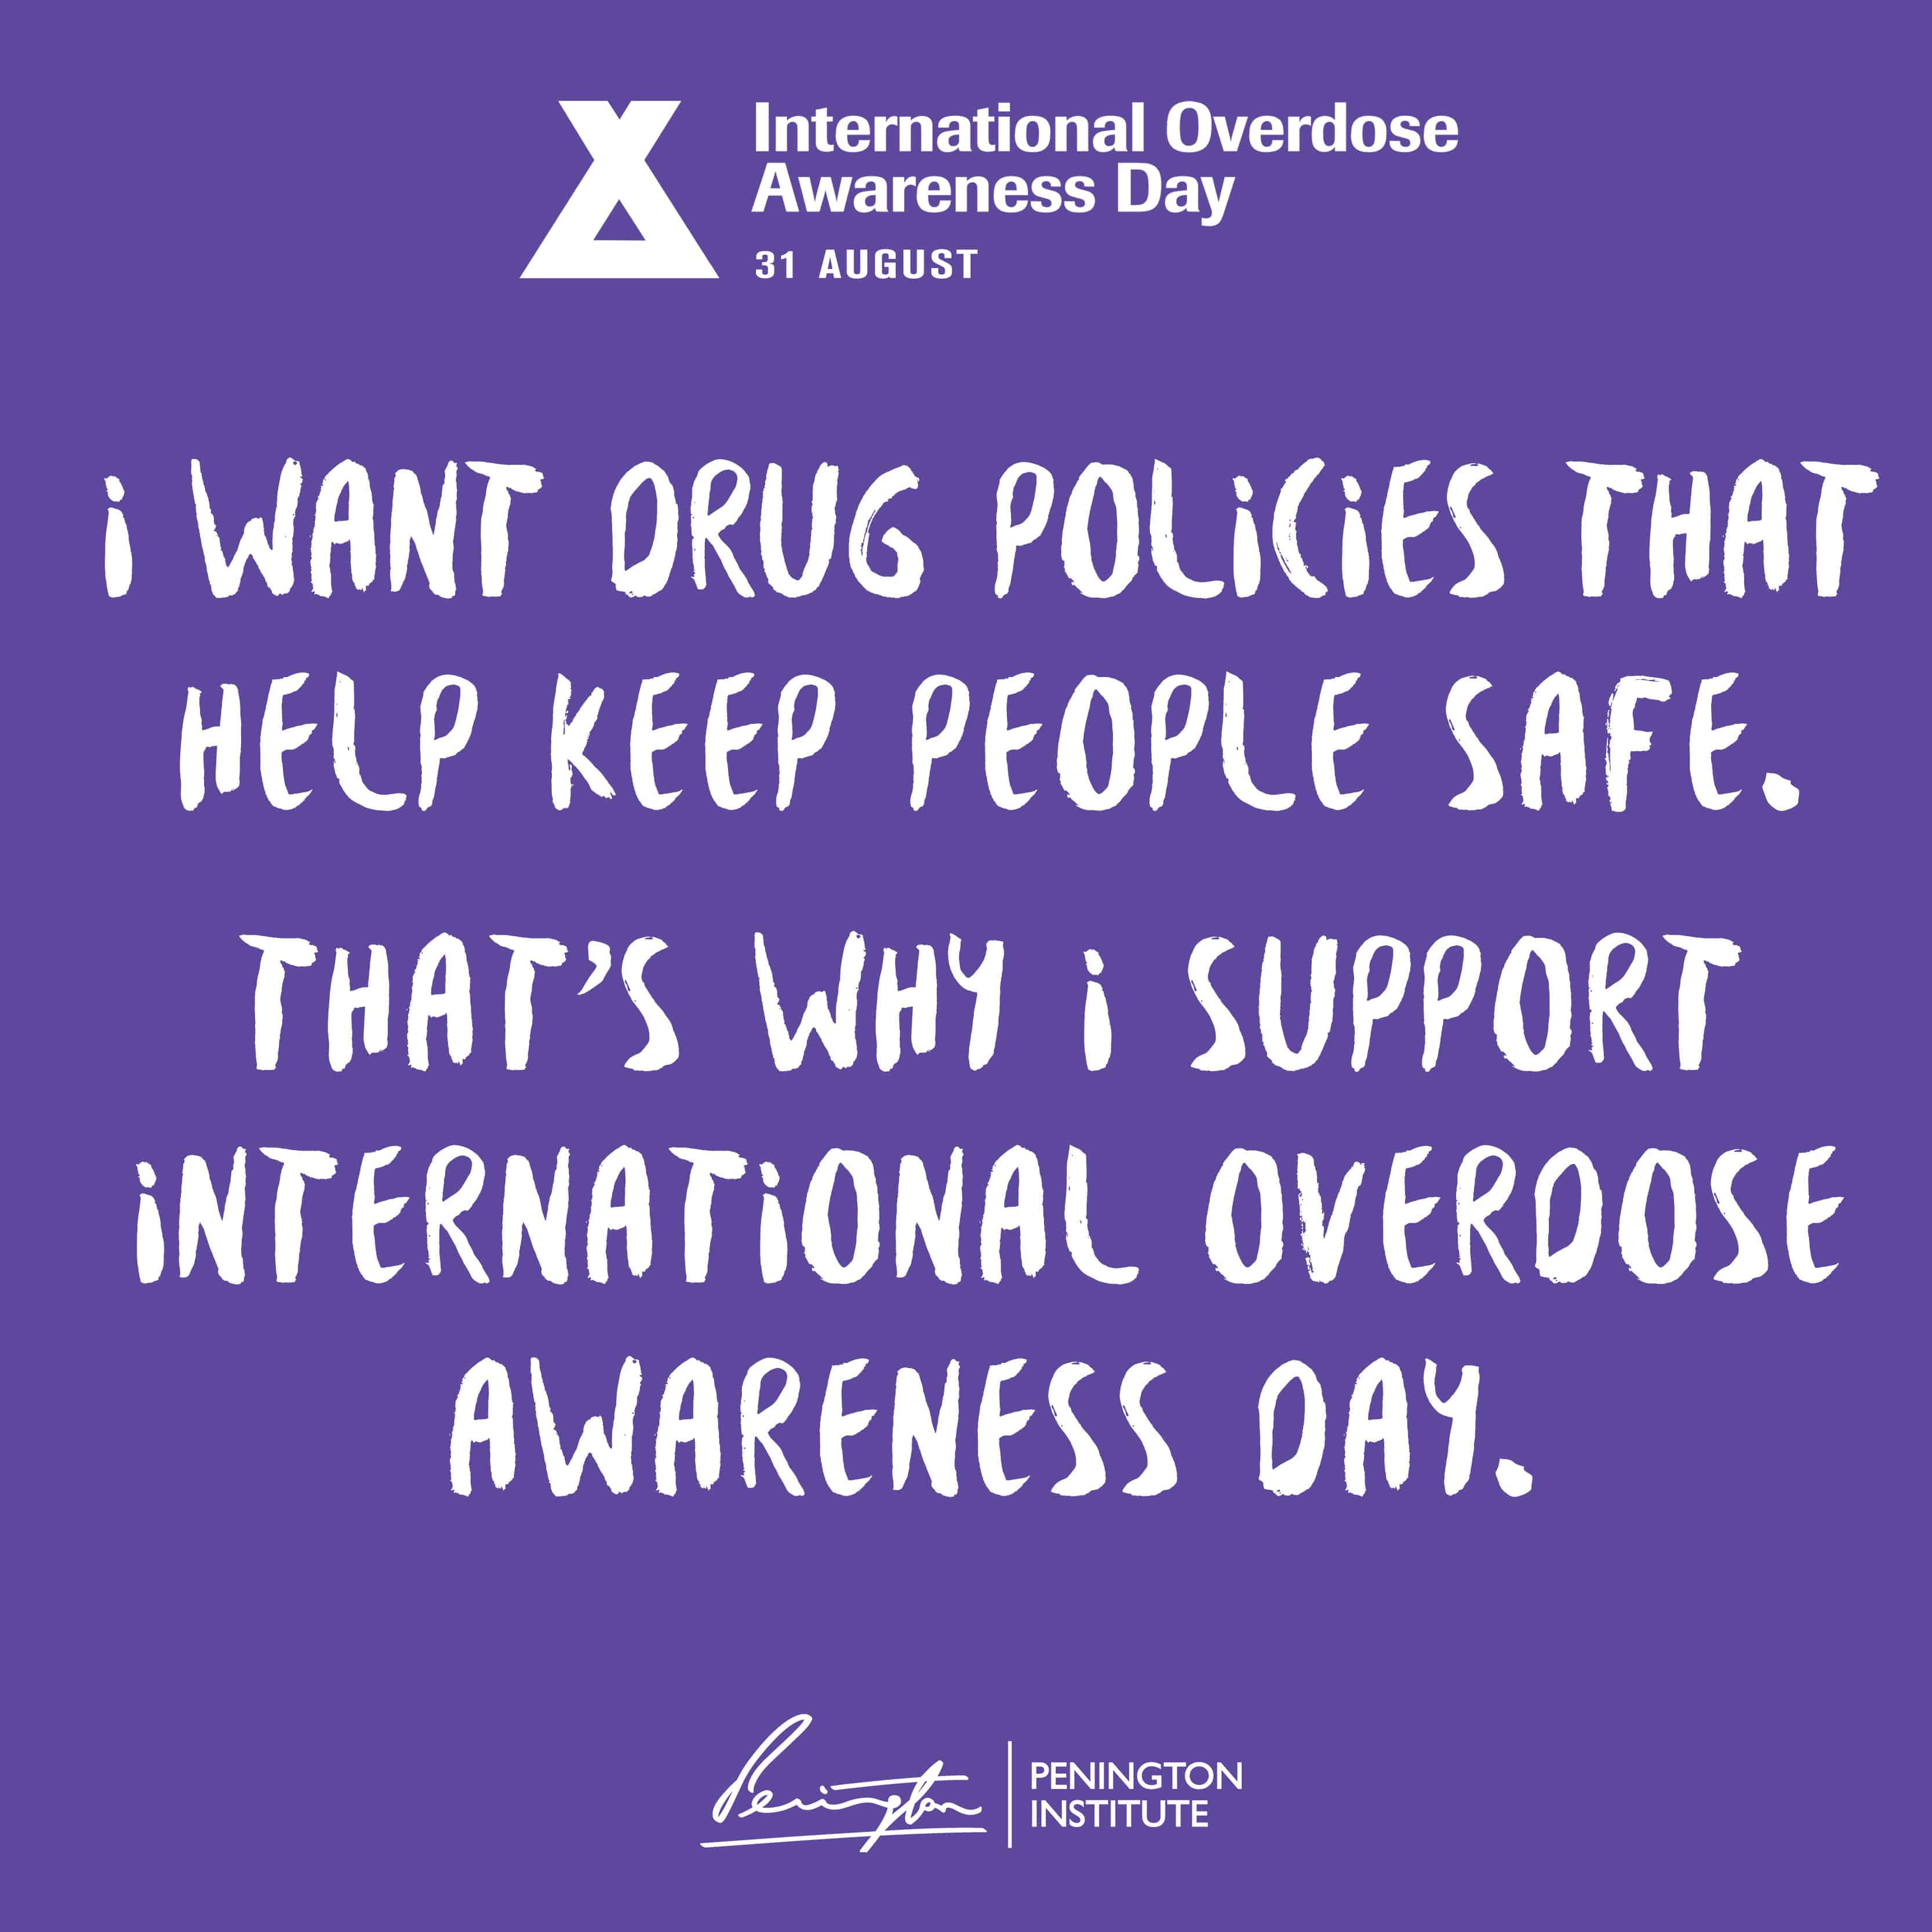 """A graphic from International Overdose Awareness Day and the Penington Institute. Text reads: """"I WANT DRUG POLICIES THAT KEEP PEOPLE SAFE. THAT'S WHY I SUPPORT INTERNATIONAL OVERDOSE AWARENESS DAY."""""""